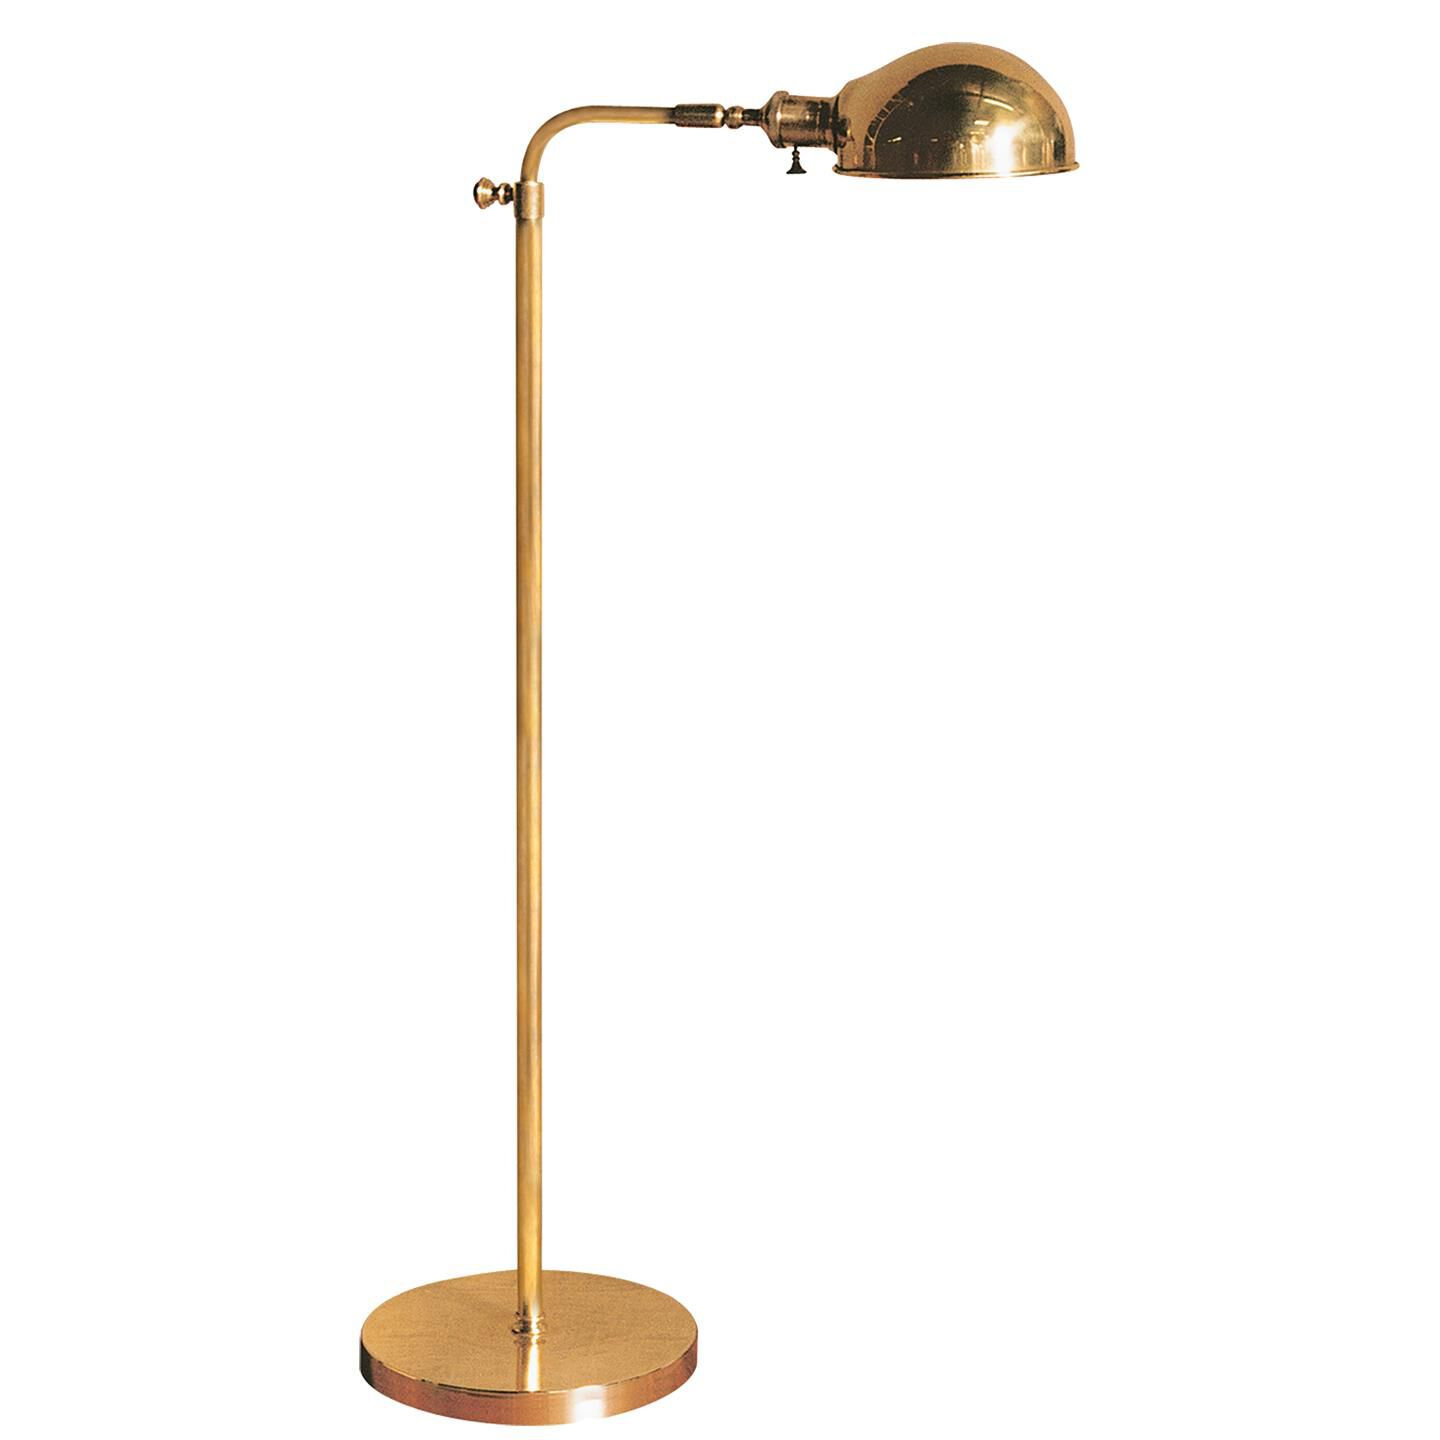 Visual Comfort and Co. Studio Vc Old Pharmacy Floor 36 Inch Reading Lamp Old Pharmacy Floor - S 1100HAB - Transitional Reading Lamp